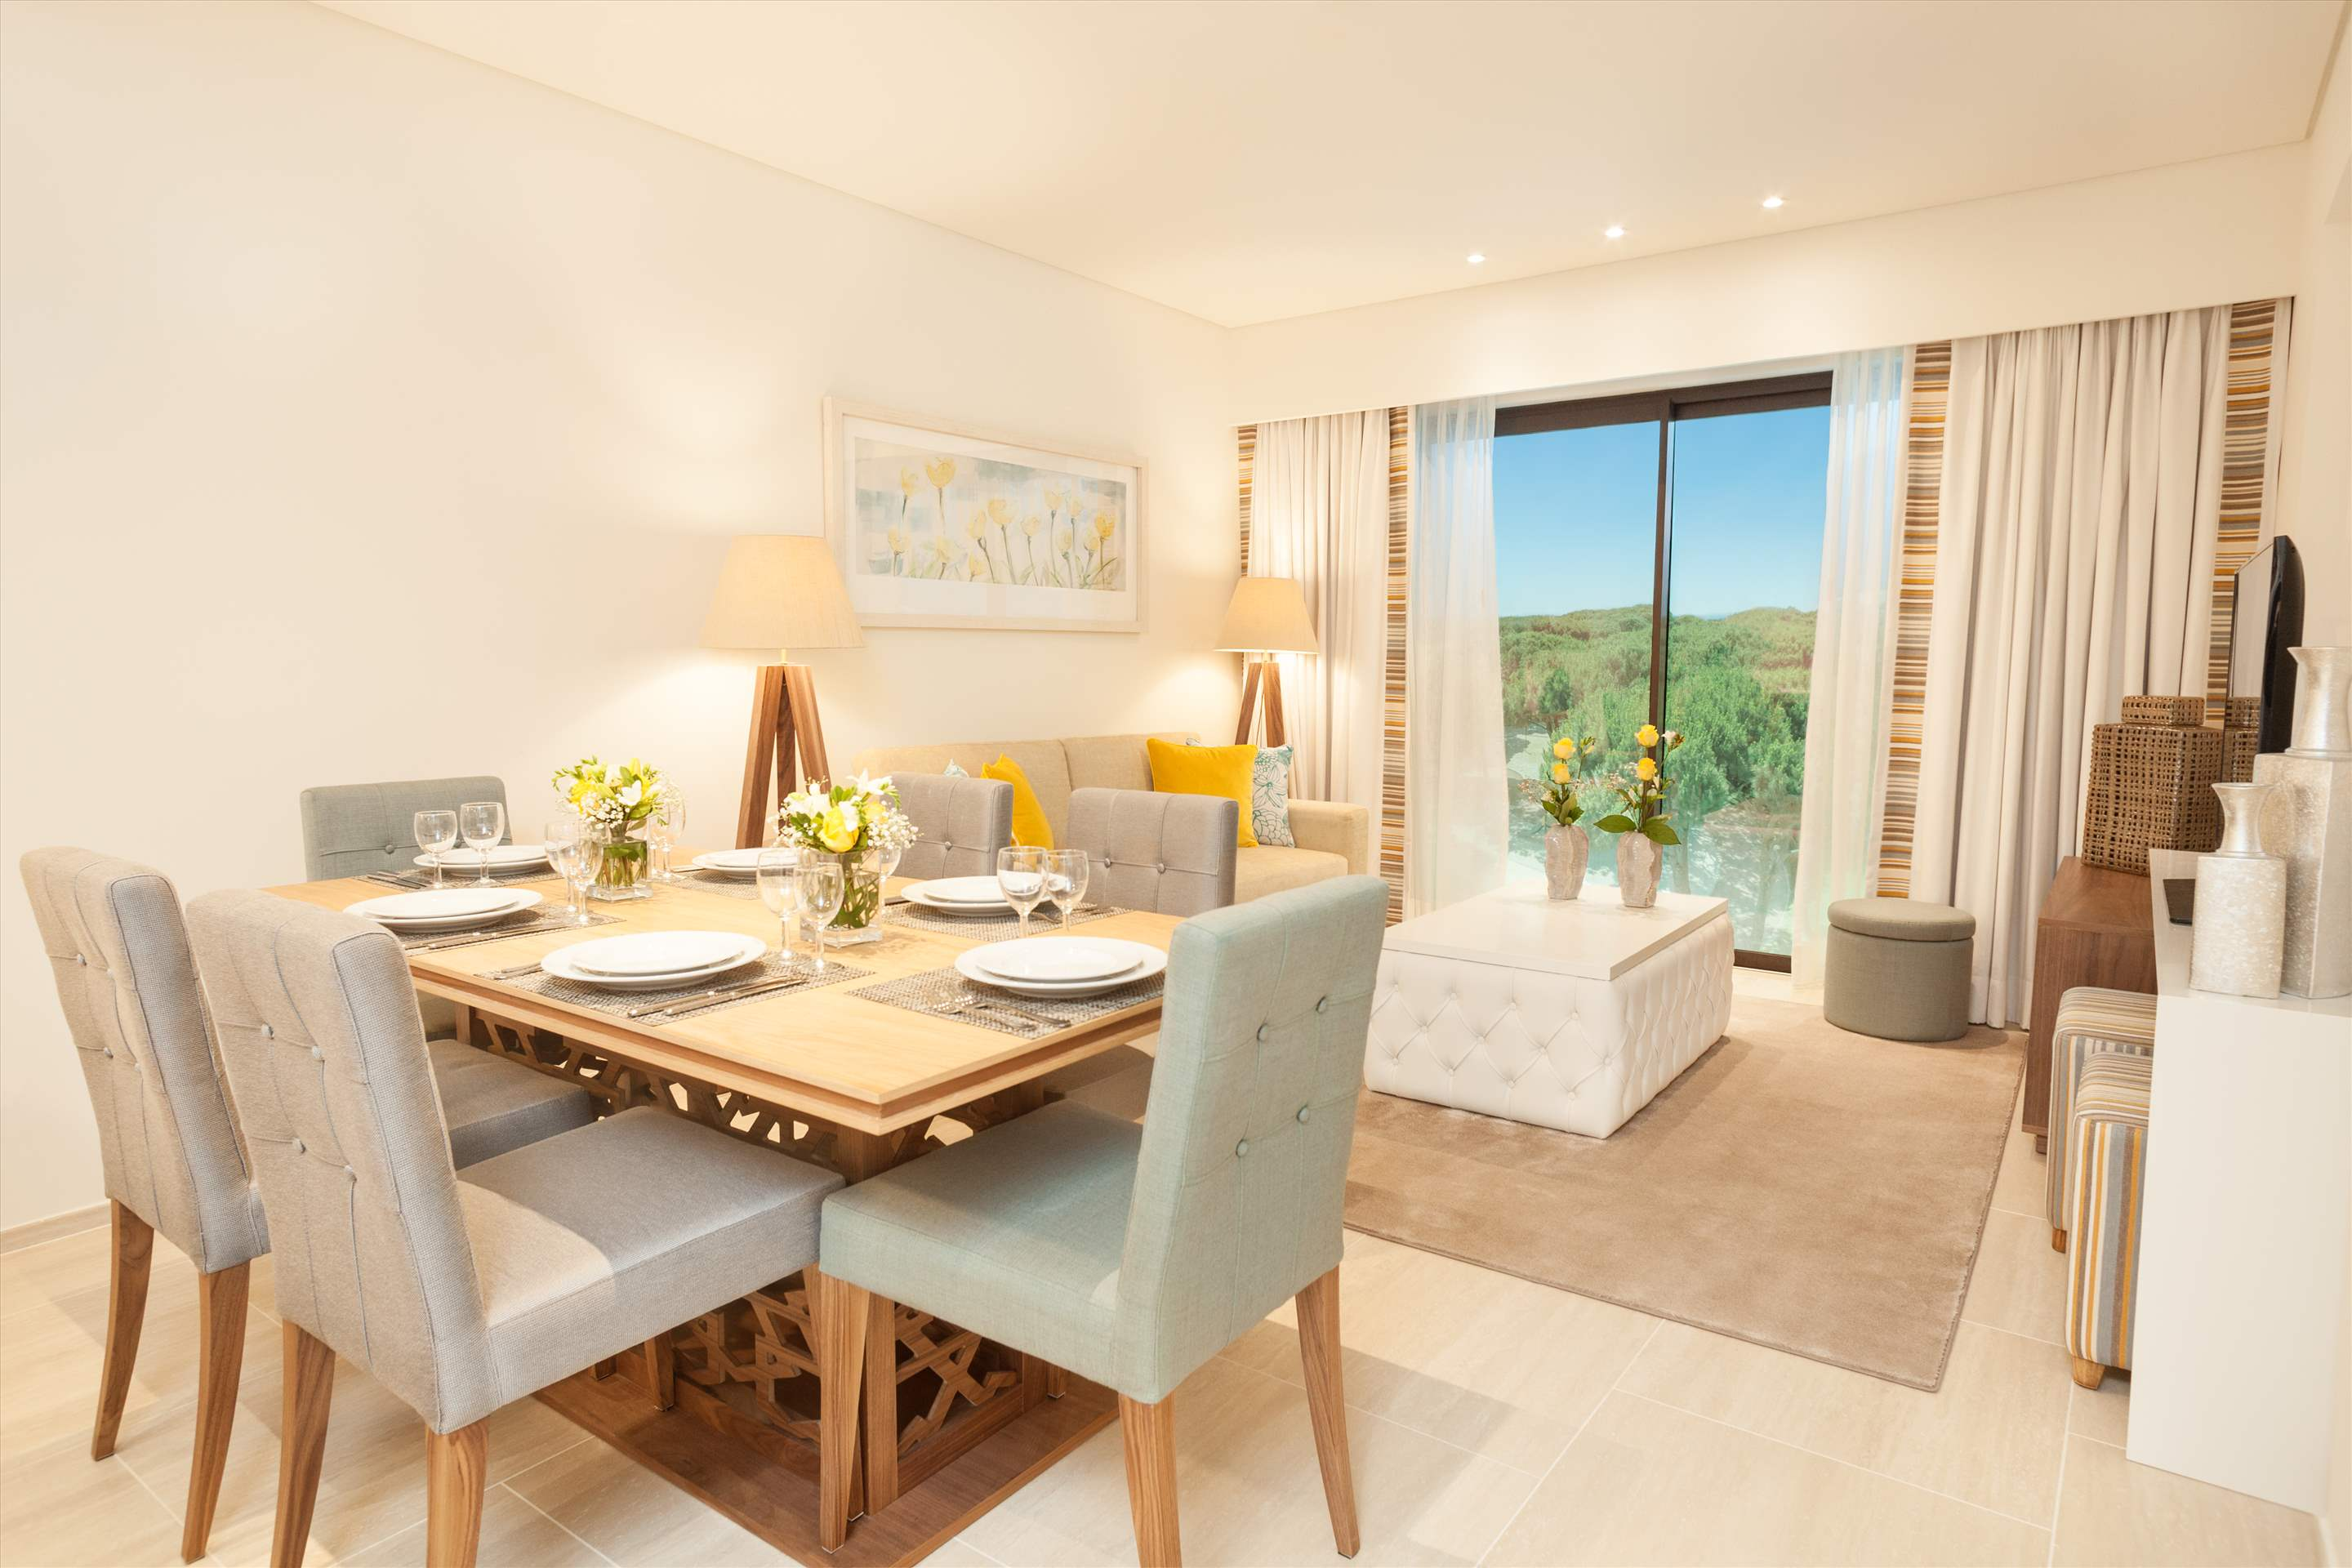 Pine Cliffs Gardens, Two Bedroom Suite, S/C Basis, 2 bedroom apartment in Pine Cliffs Resort, Algarve Photo #11